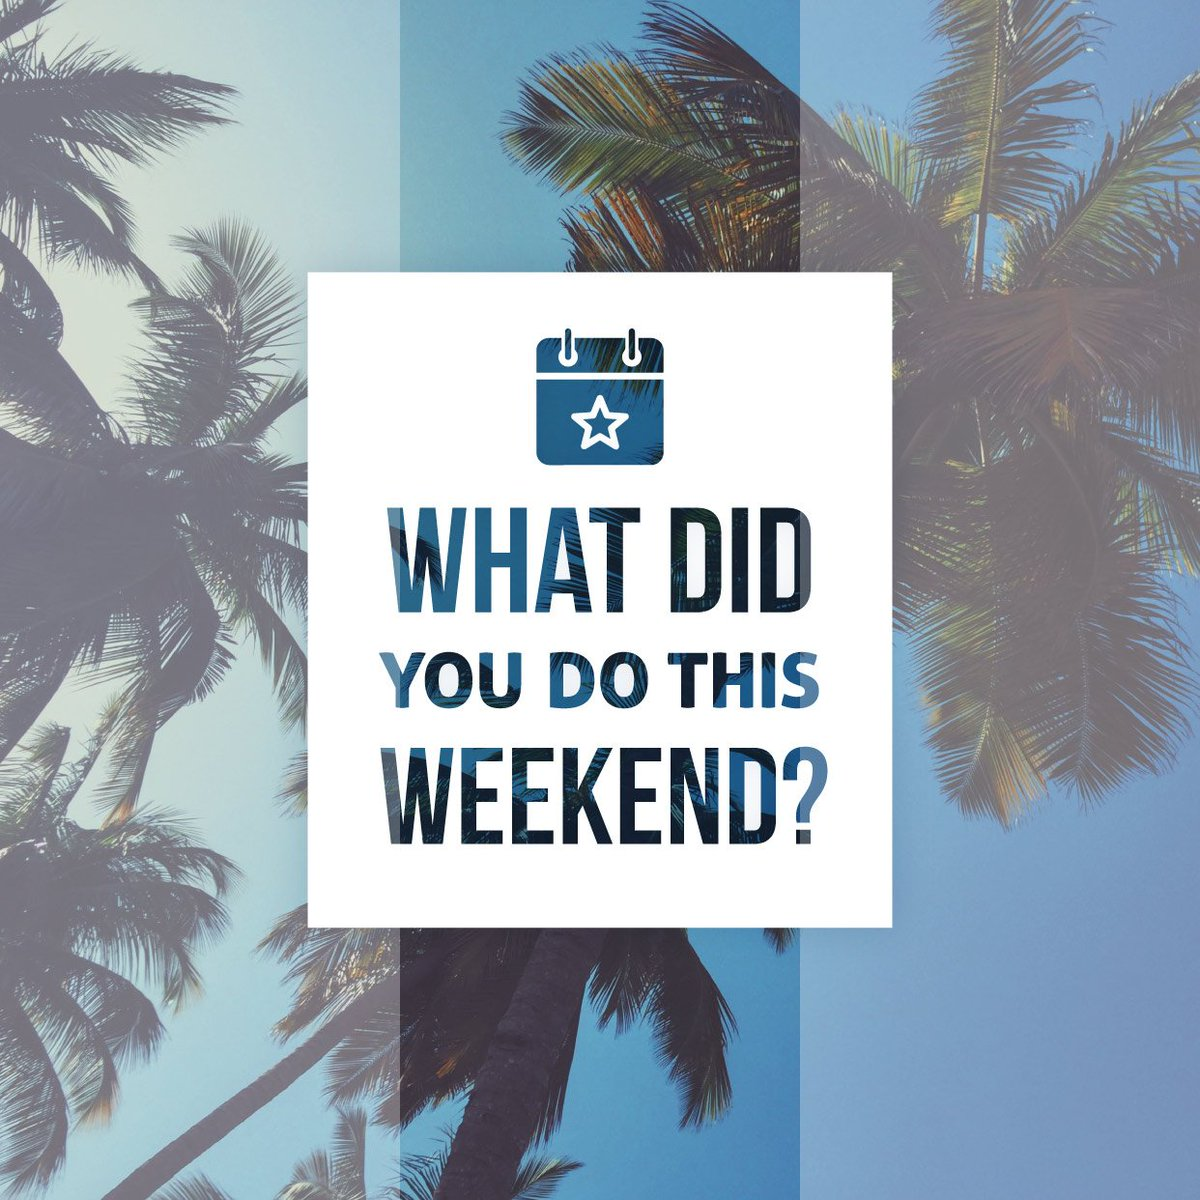 DO ANYTHING EXCITING over the weekend? We'd love to hear about it in the comments below! #weekend #summerfun #bon... <br>http://pic.twitter.com/k2wFlv0wCh